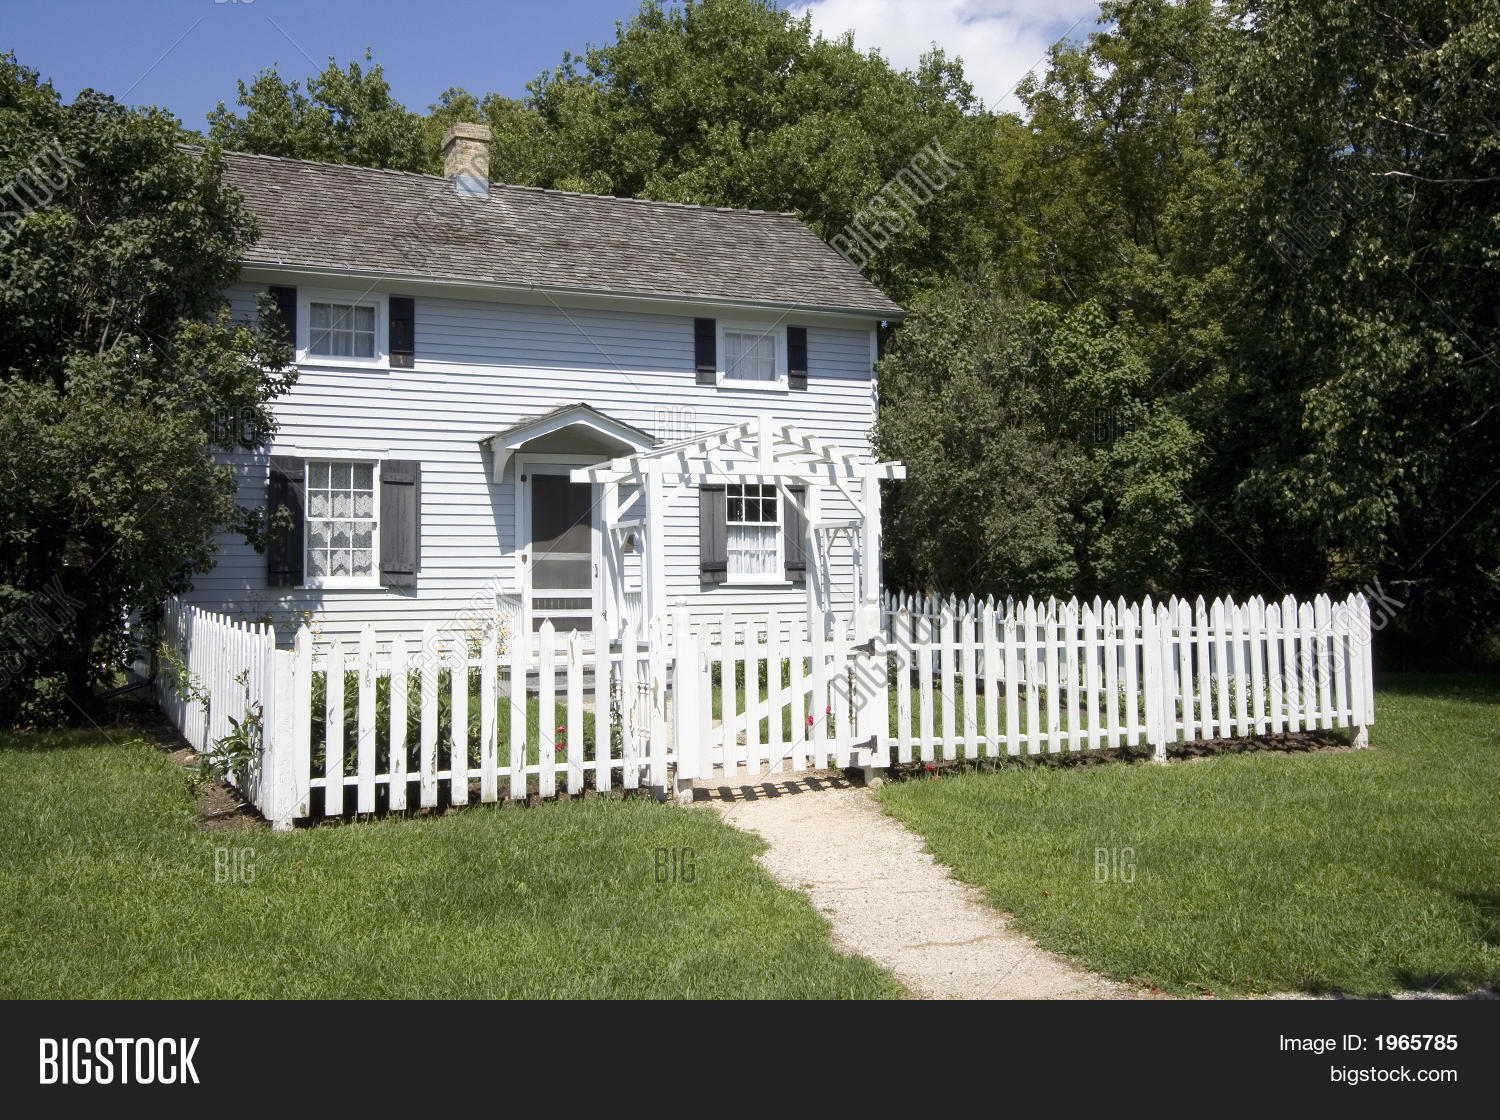 little house white picket fence image photo bigstock. Black Bedroom Furniture Sets. Home Design Ideas